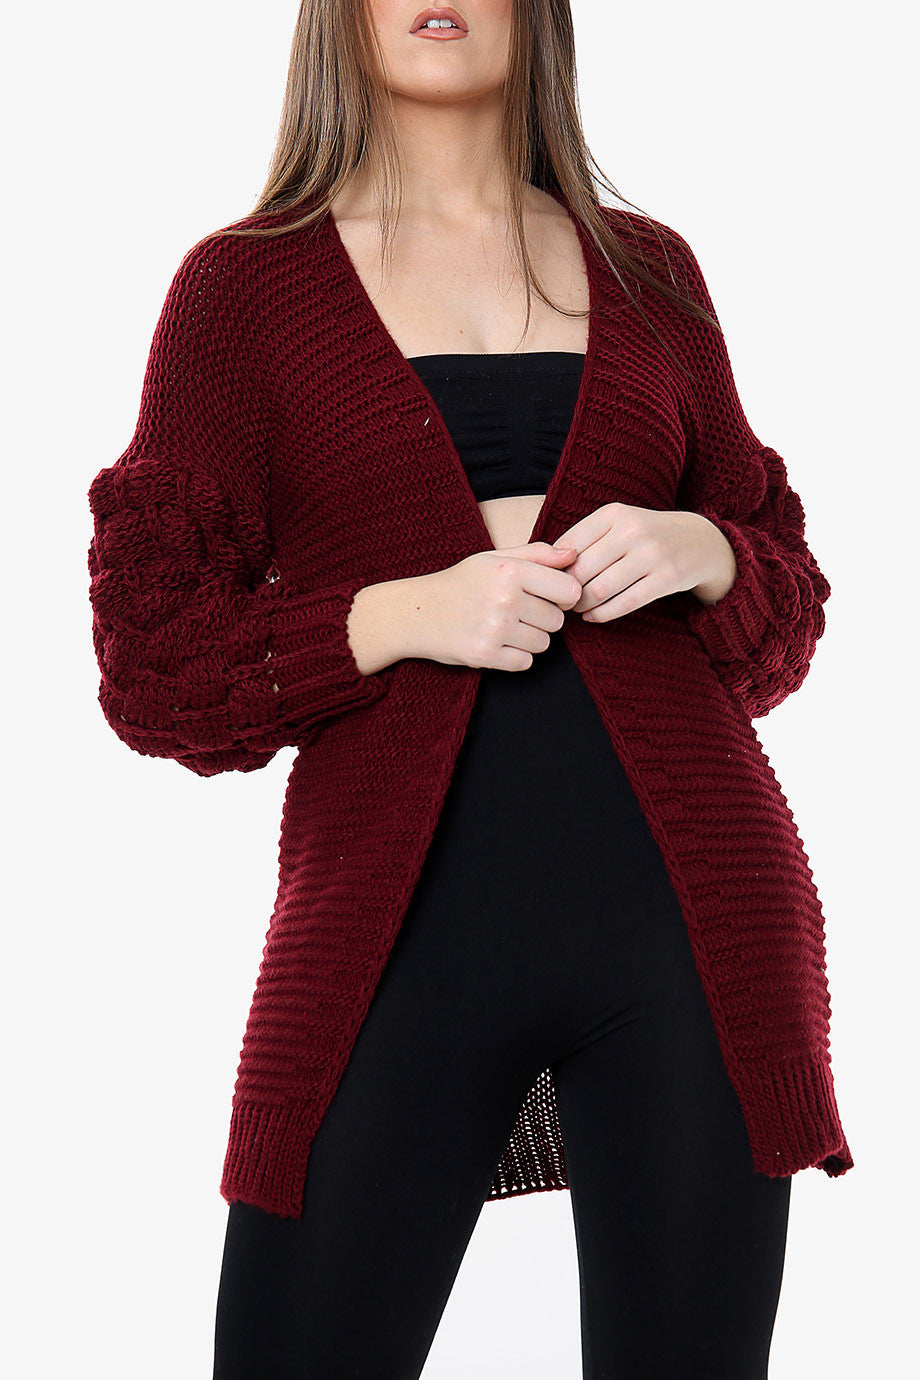 Emem Bobble Sleeve Knitted Cardigan | Wine Knitted Cardigan - Timeless Springs